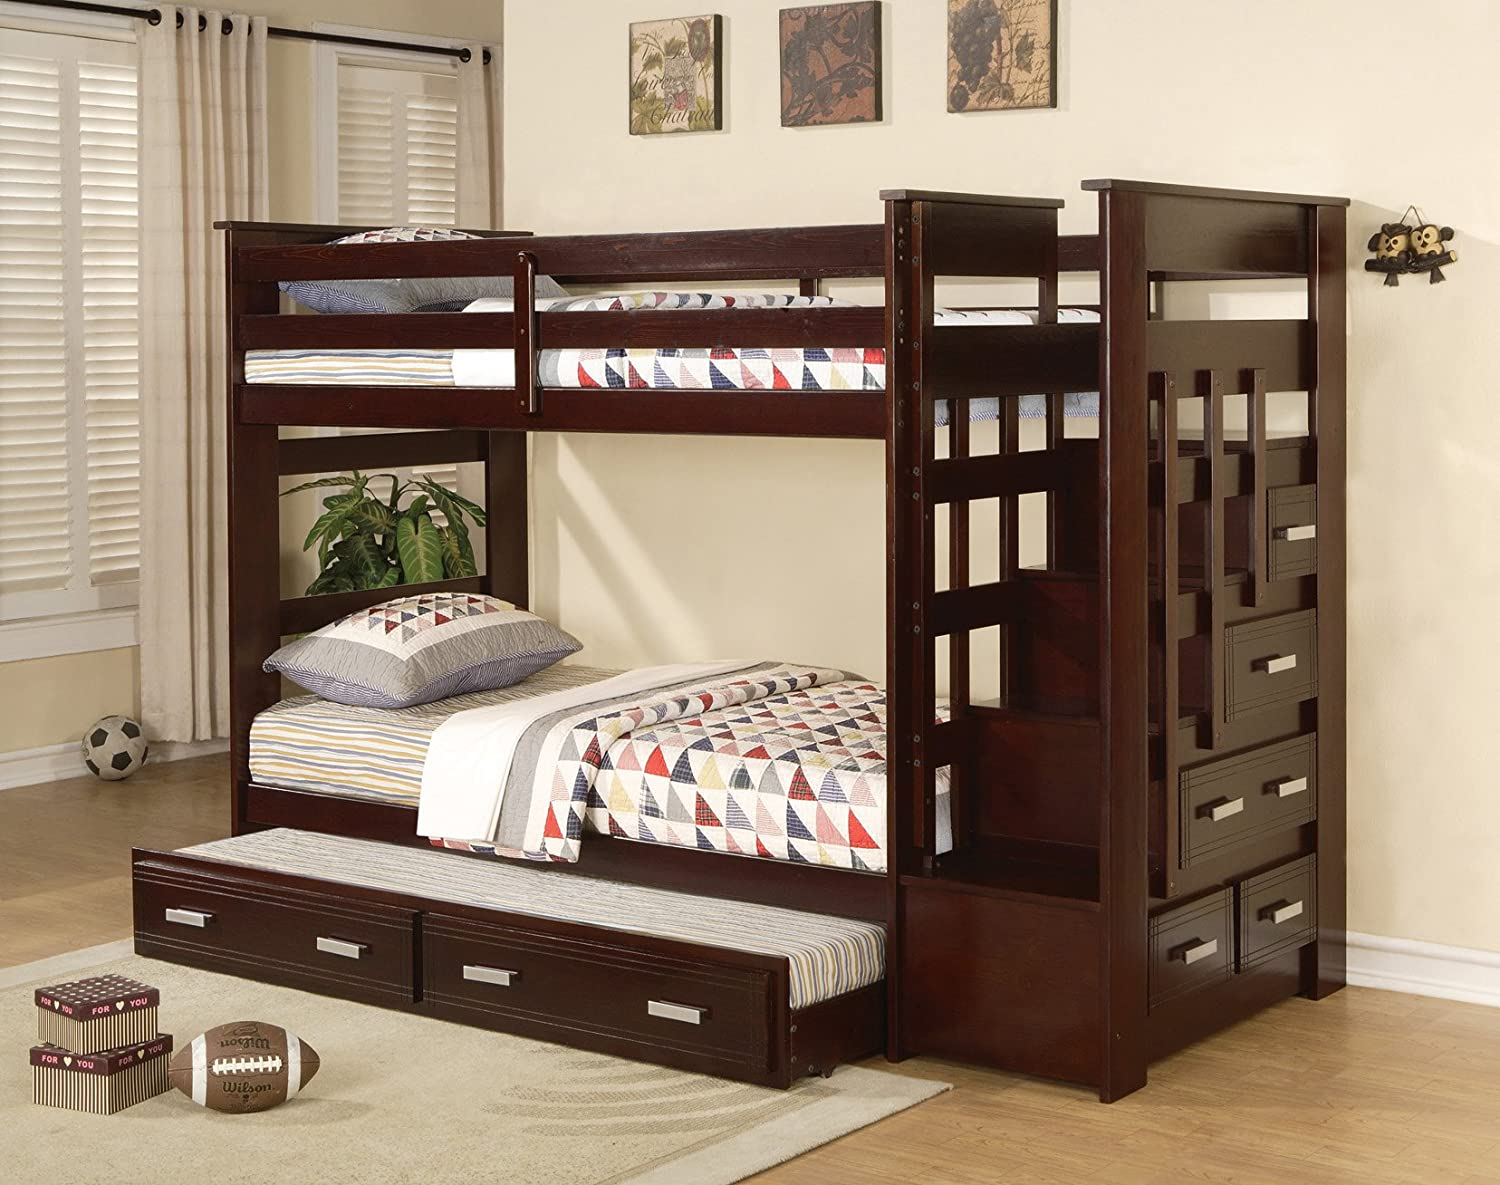 Amazon.com - Acme Furniture Over Twin Bunk Bed Ladder Trundle ...